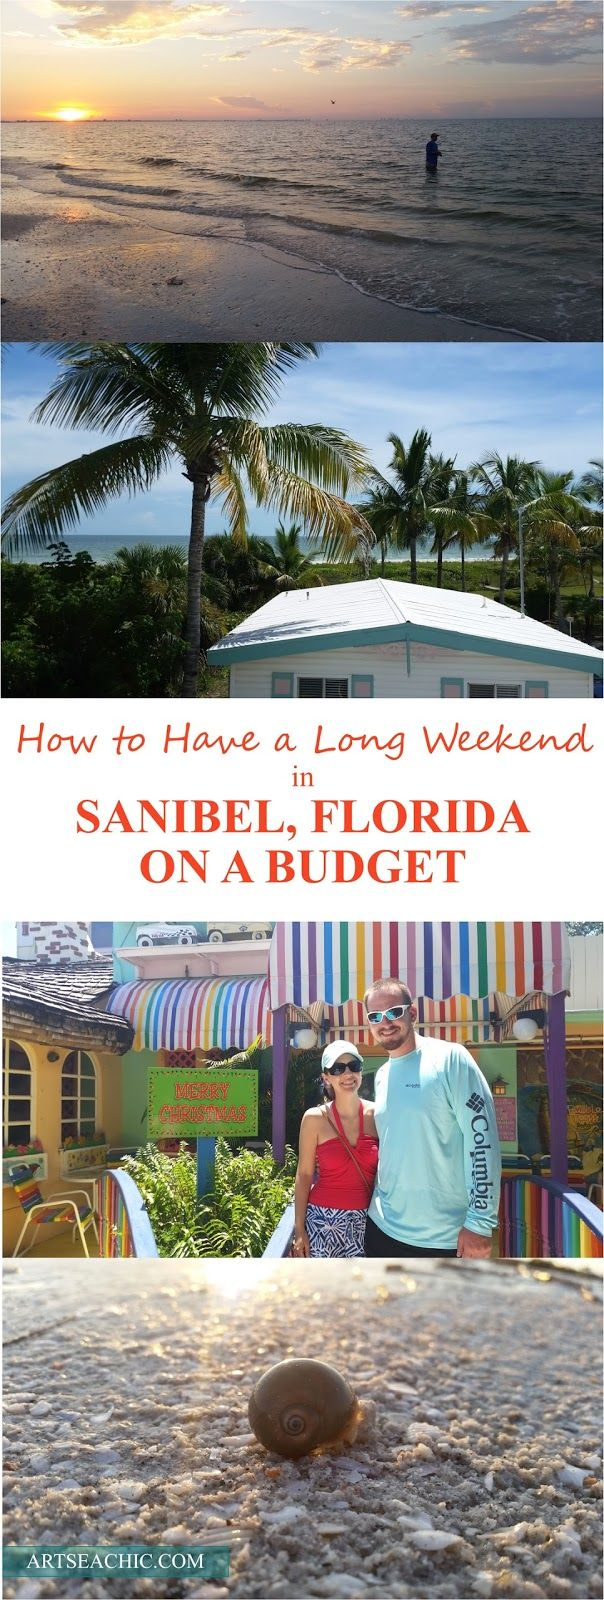 It's the secret shelling spot of the South, and we are frequent visitors!  Take a peak into our weekend getaway to Sanibel Island, Florida for less  than an all-in budget of $2,000!